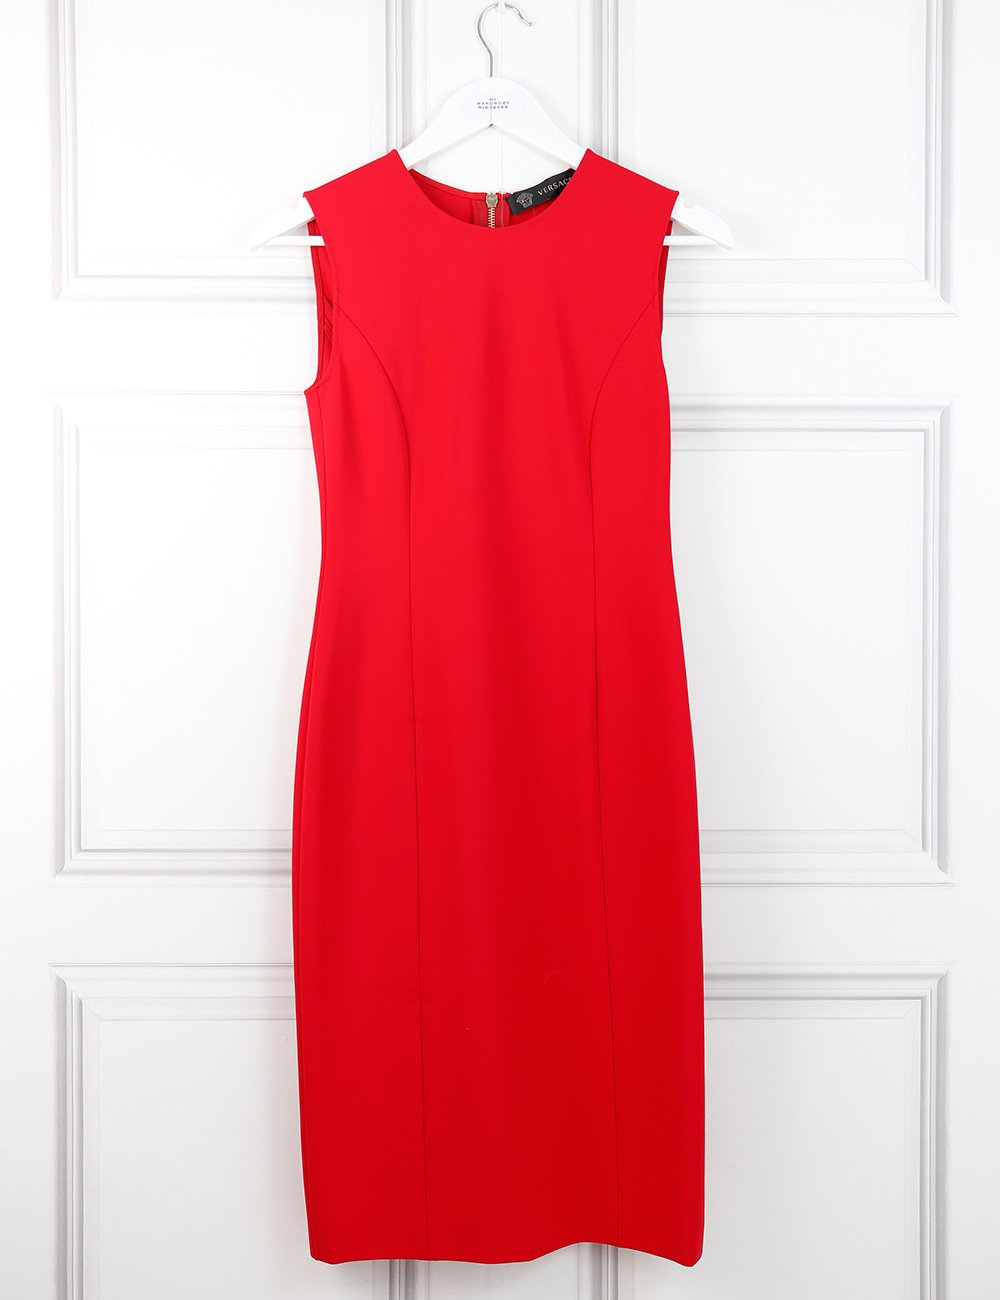 Versace Collection red mid-length dress with full back zip 8UK- My Wardrobe Mistakes